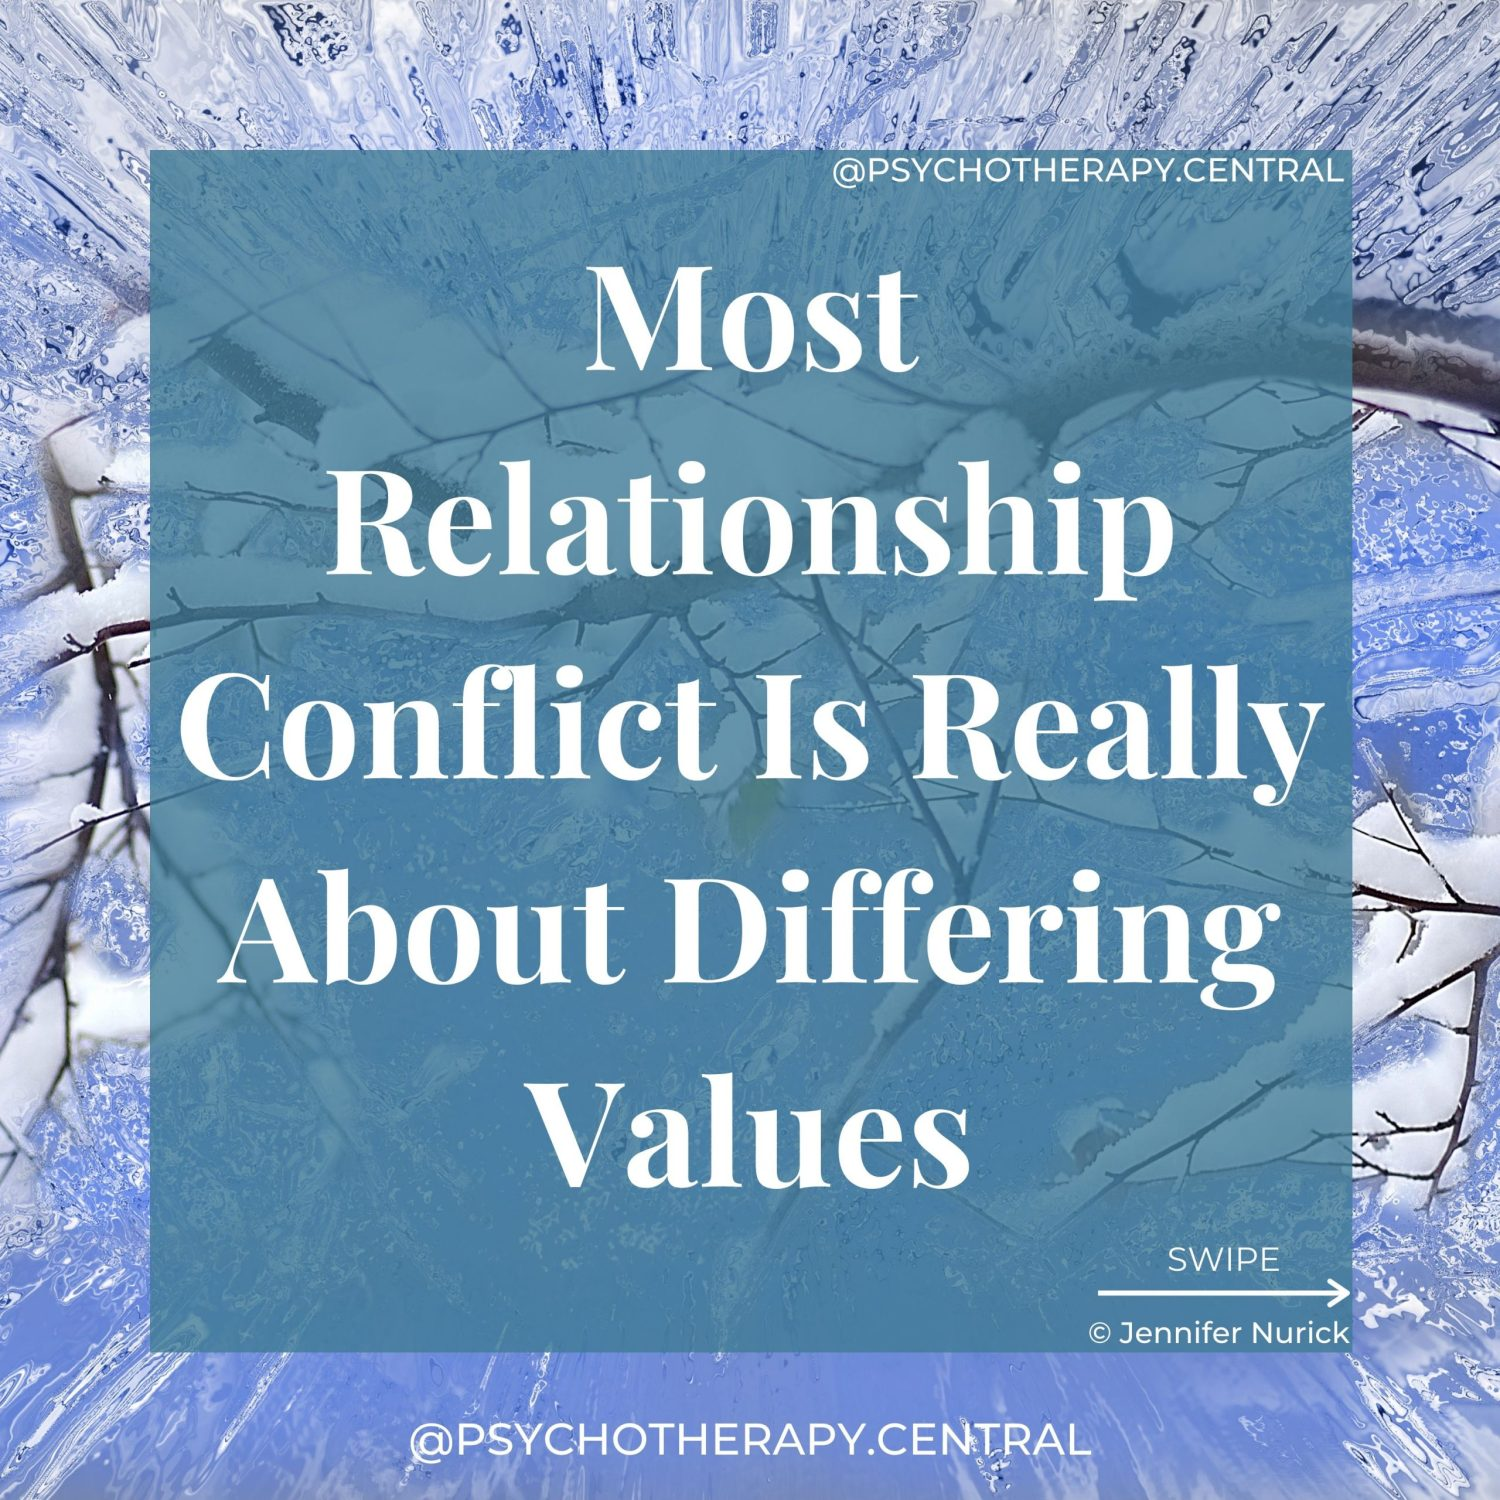 Most Relationship Conflict Is Really About Differing Values: Helpful discussions to have come from questions like: Look at a list of values. What are your top three values? Why are these things important to you? What has made these values important to you? What are your simple pleasures in life? Do you value honesty in our relationship? What does the interplay of: work and family work and friends friends and family look like for you now and in the future? How do you show your love? What makes you feel loved?